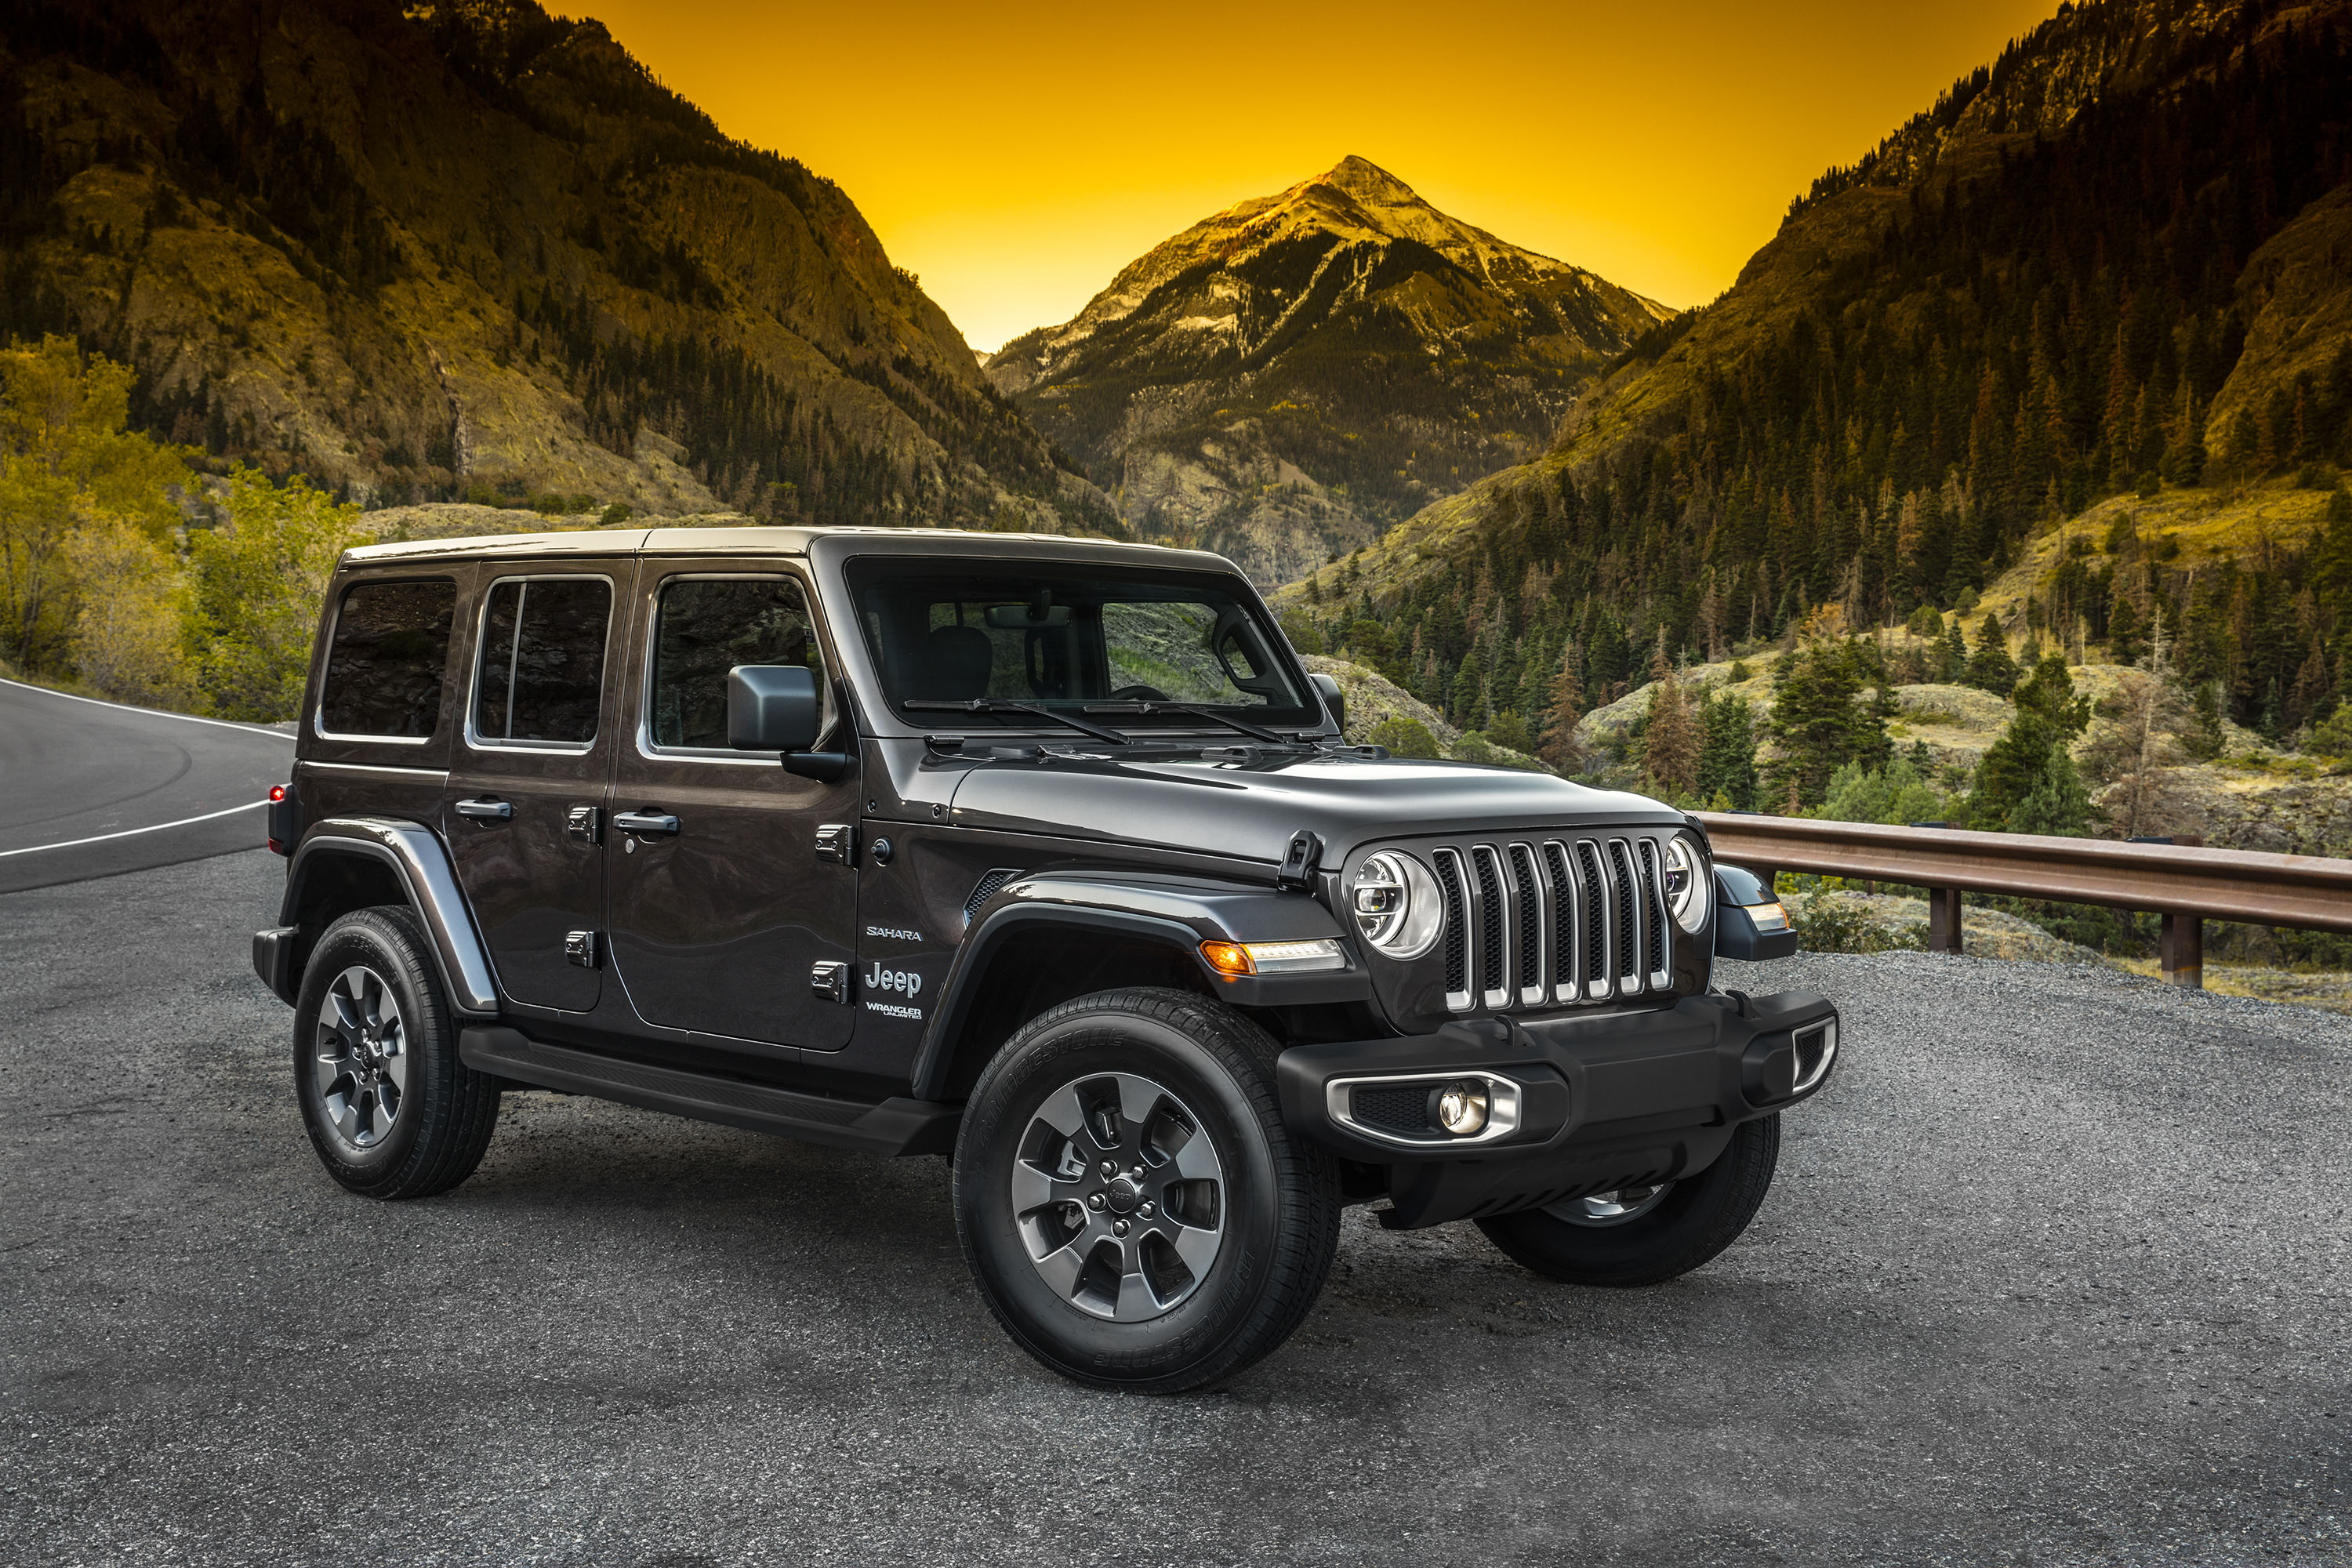 2020 Jeep Renegade Hybrid Debut Details >> The Jeep Wrangler Jl To Go Hybrid In 2020 Top Speed